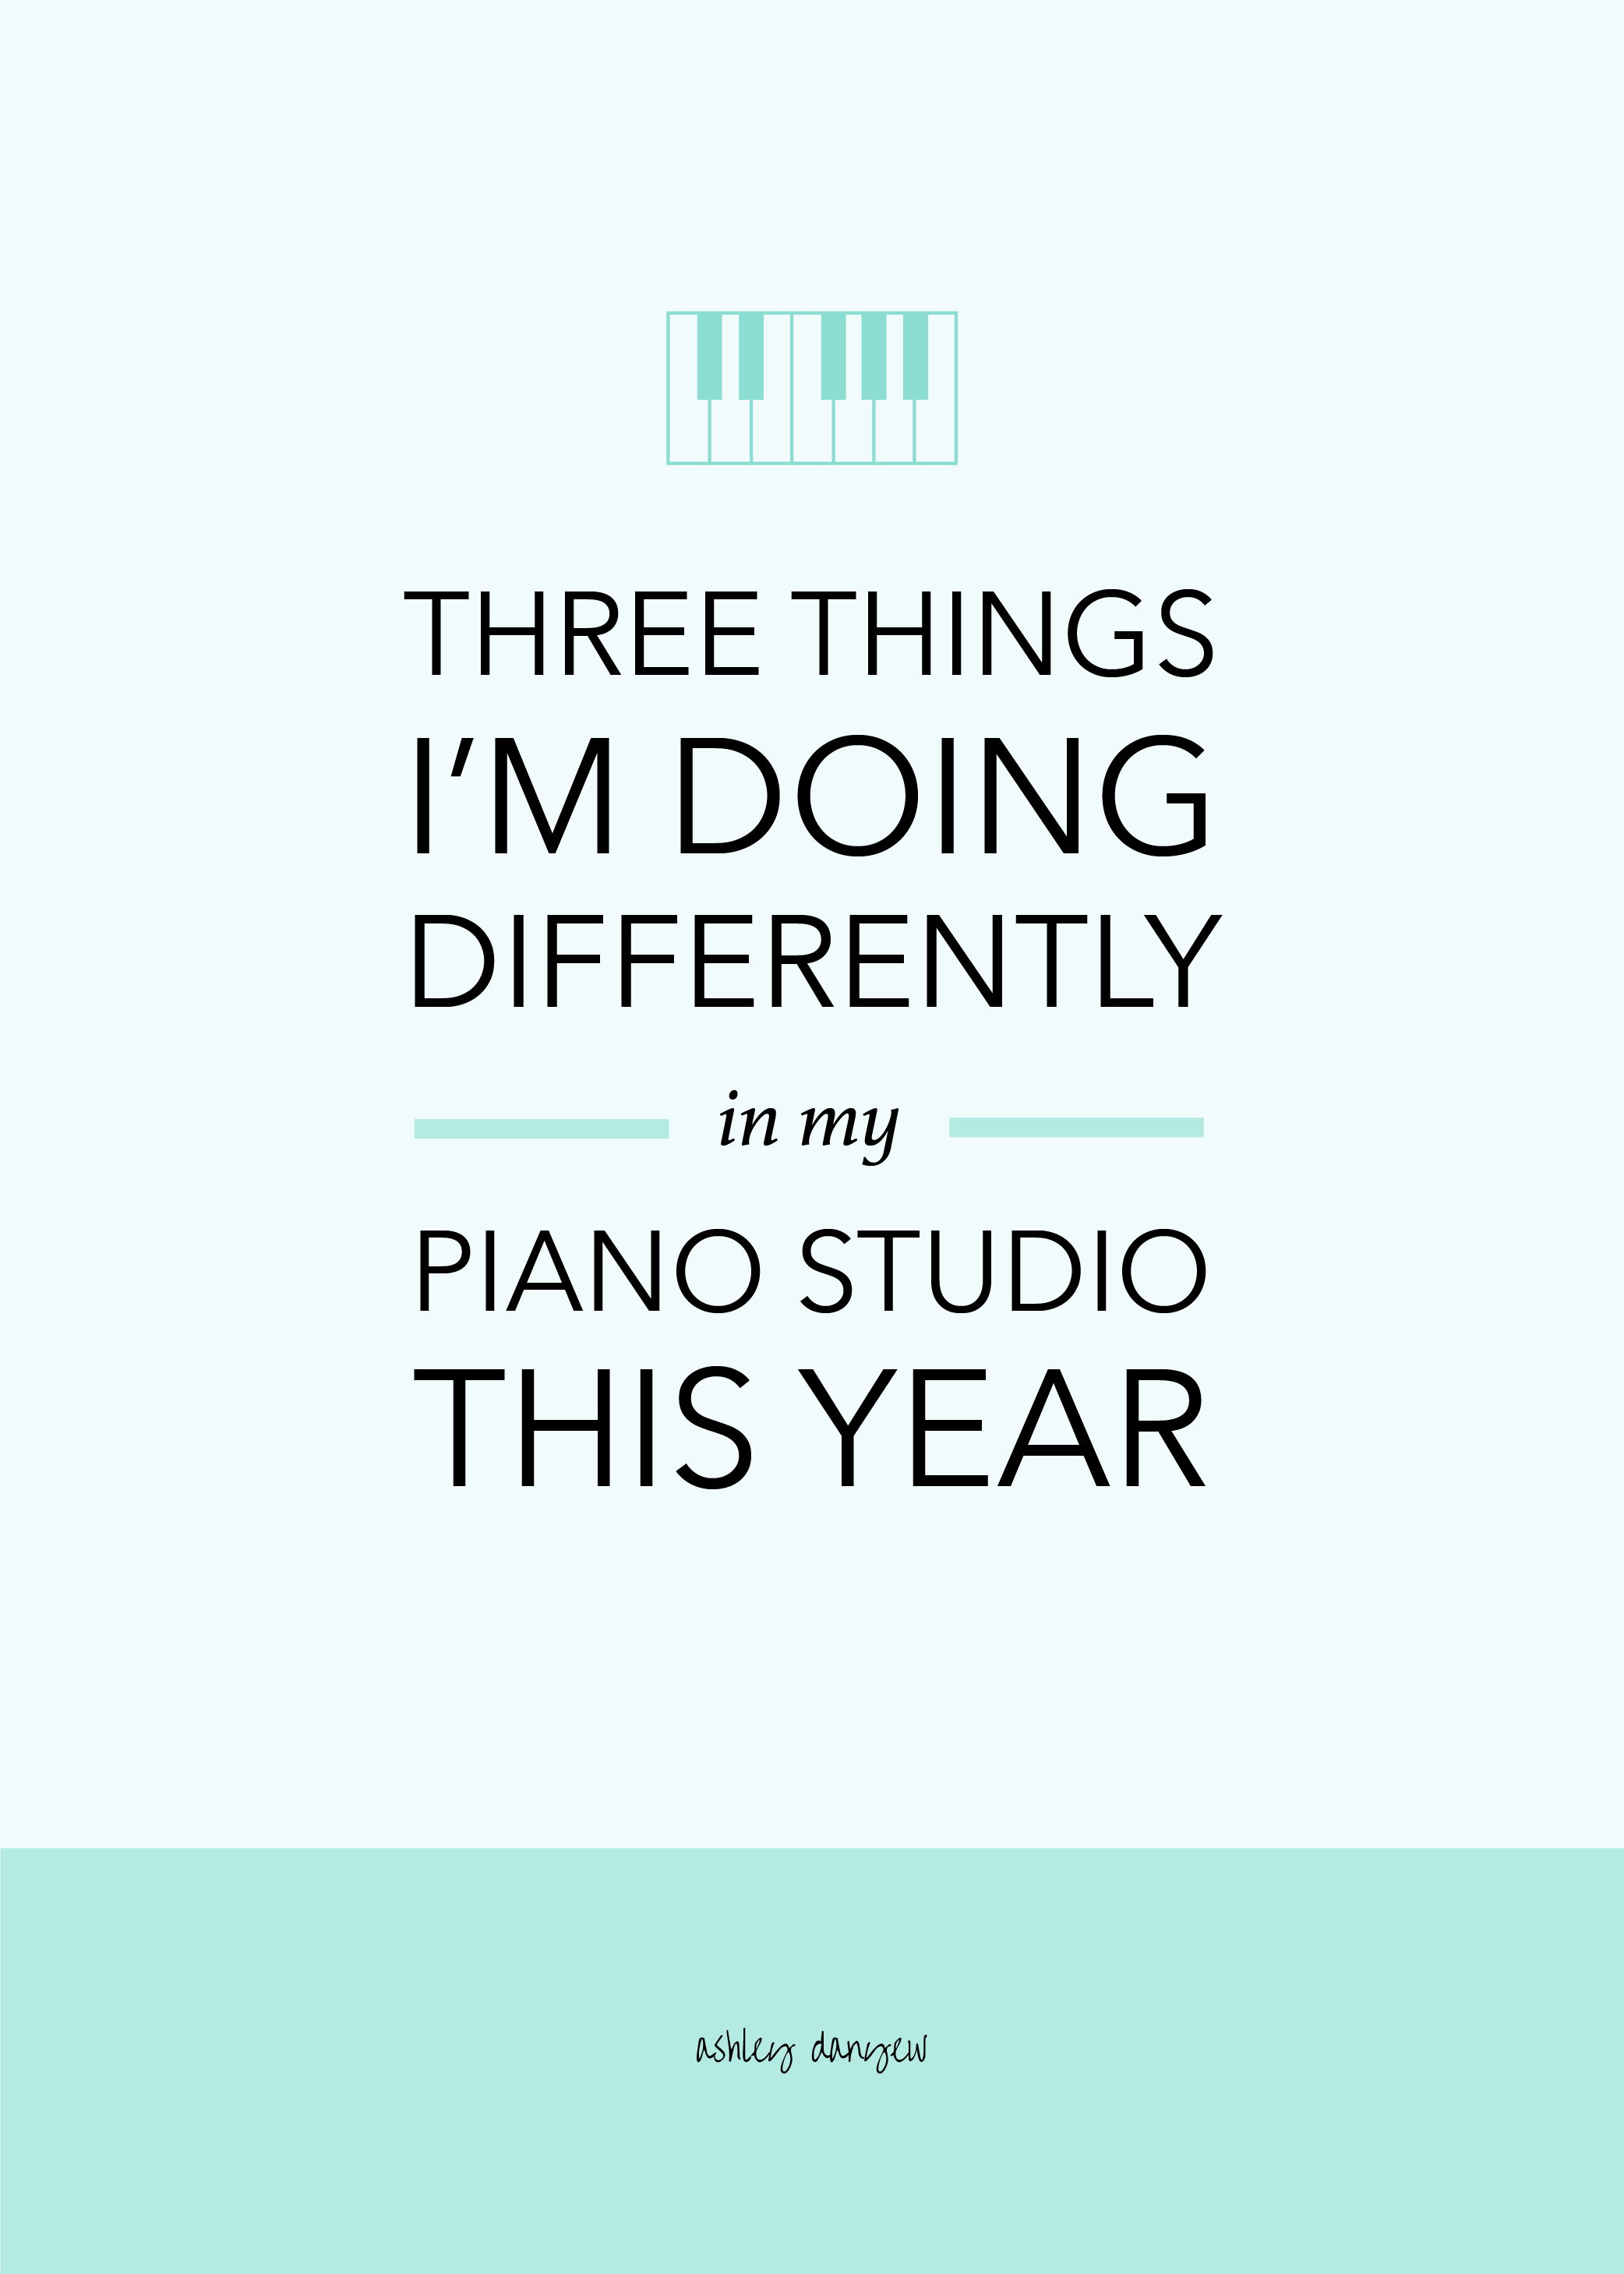 Three Things I'm Doing Differently in My Piano Studio This Year-51.png